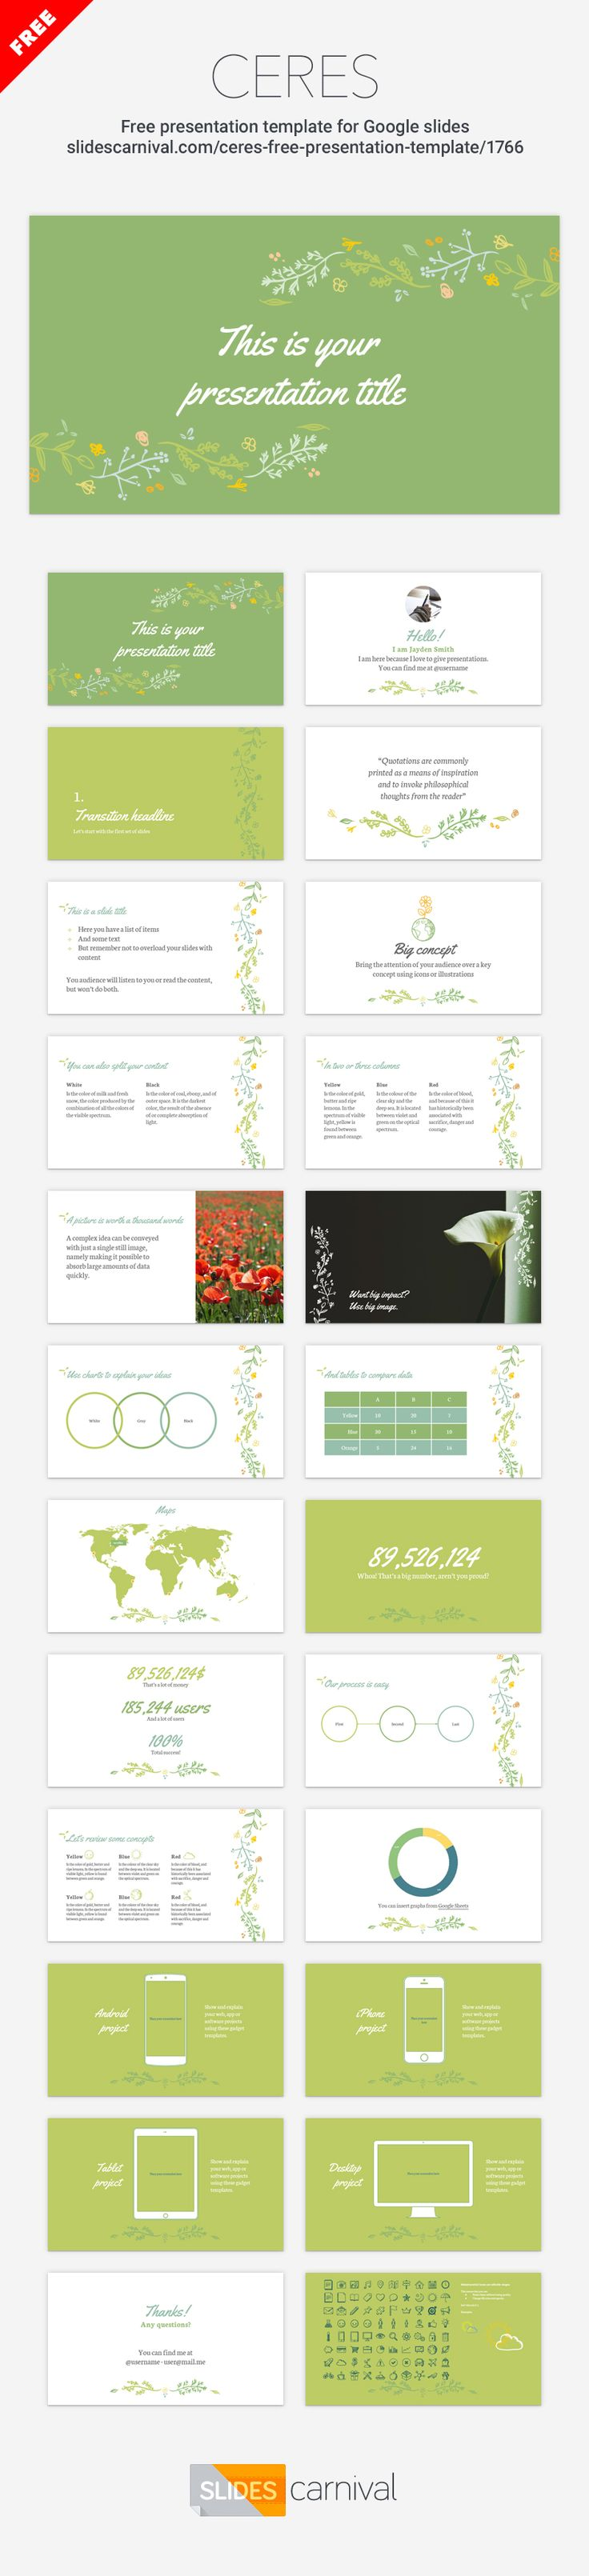 This template has a beautiful hand drawn floral and leaves decoration. The theme is designed with a green color palette that resembles nature, so use it to give a presentation about wild flora, gardening, botanics or organic cosmetics.